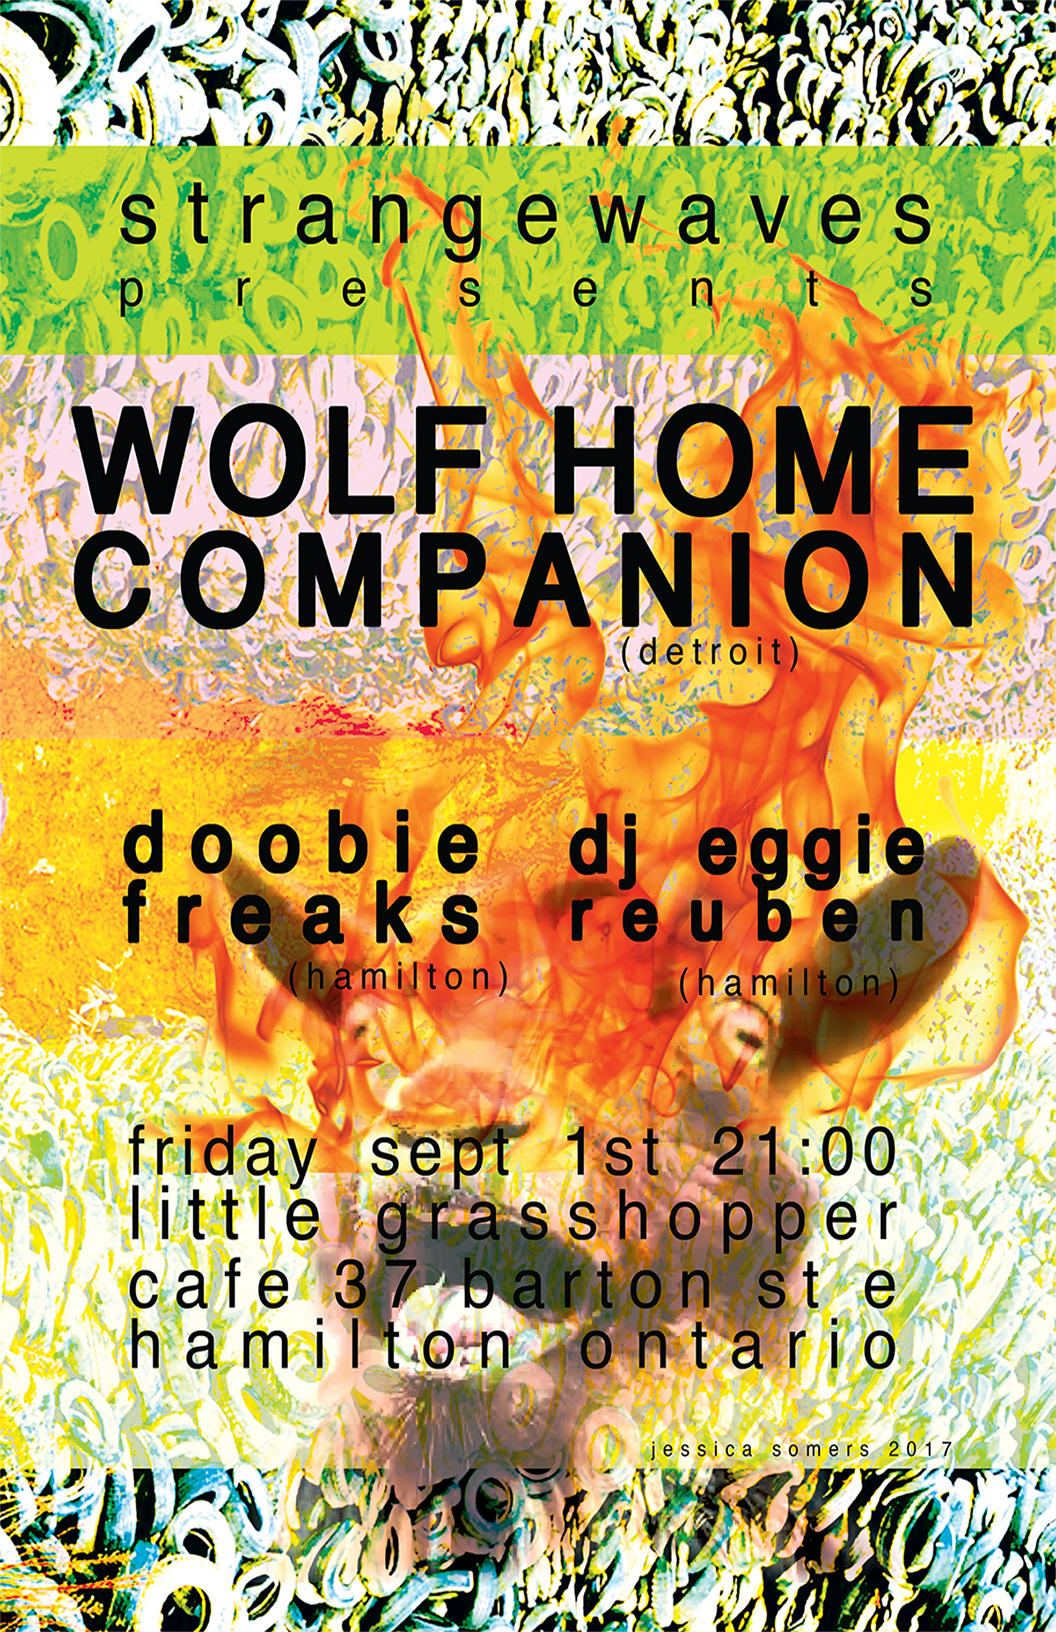 WOLF HOME COMPANION + DOOBIE FREAKS + DJ EGGIE REUBEN  @The Little Grasshopper Cafe